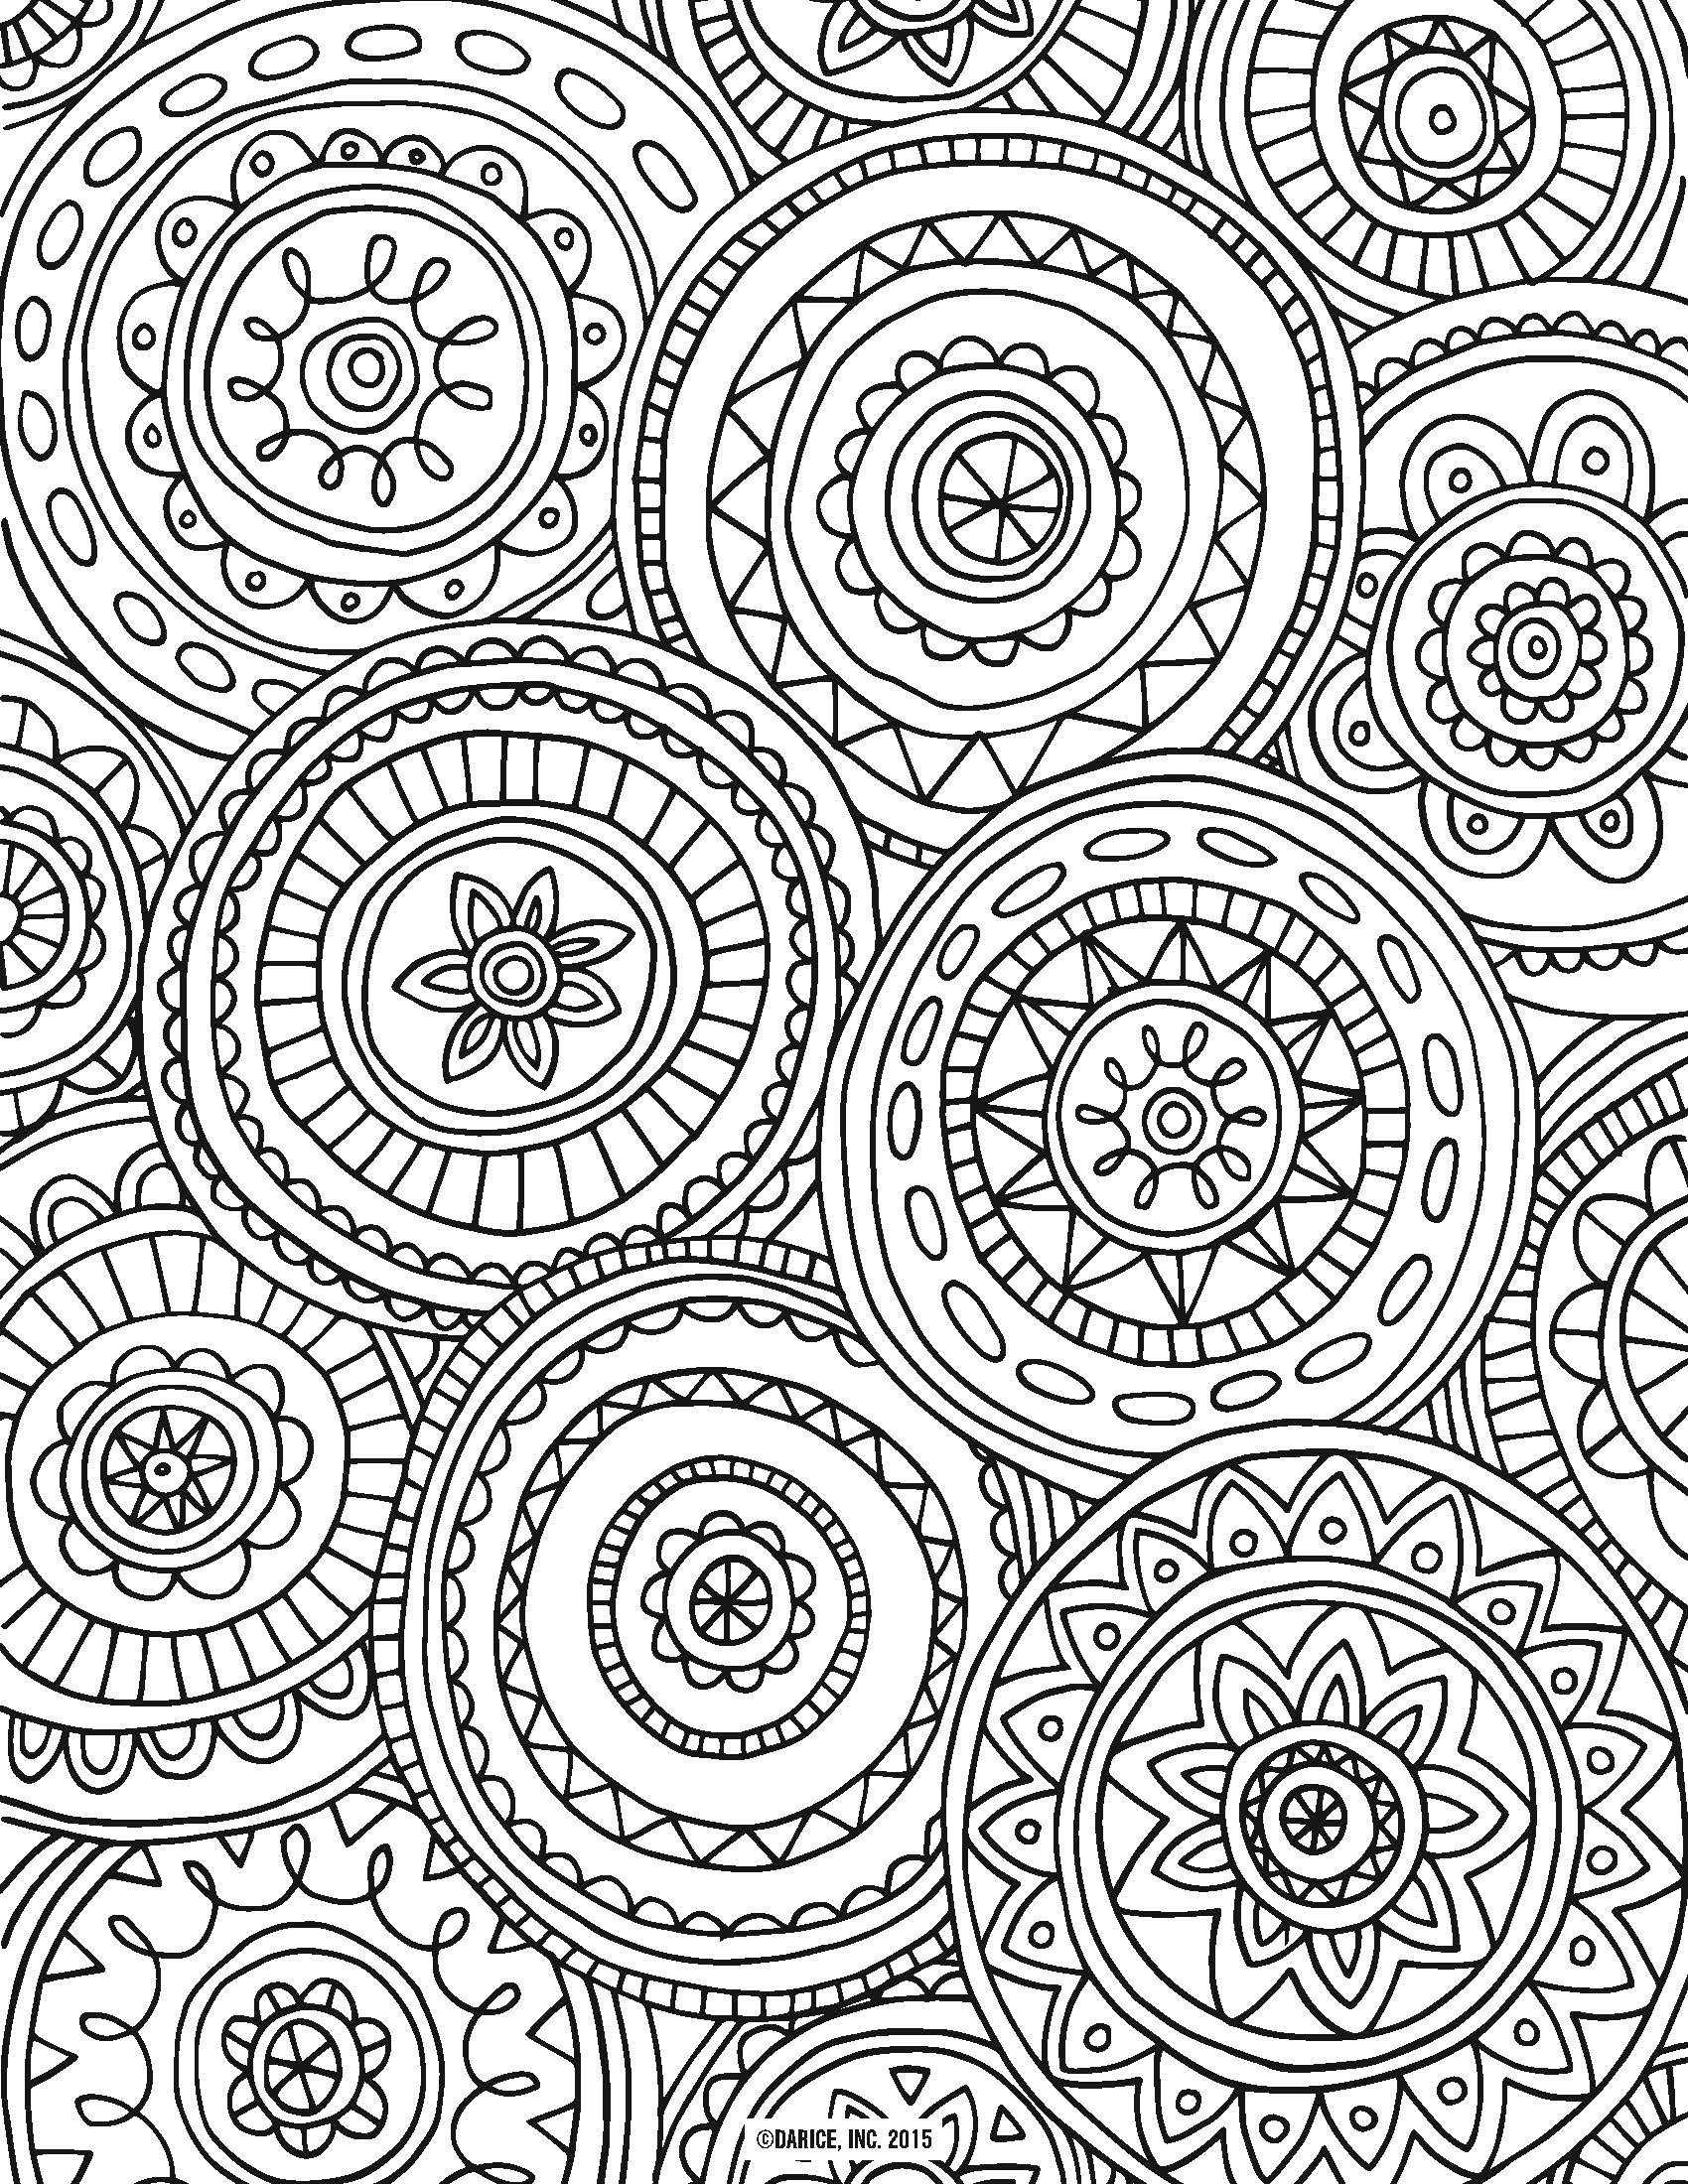 Free Adult Coloring Pages - Adult Coloring Page Coloring Home